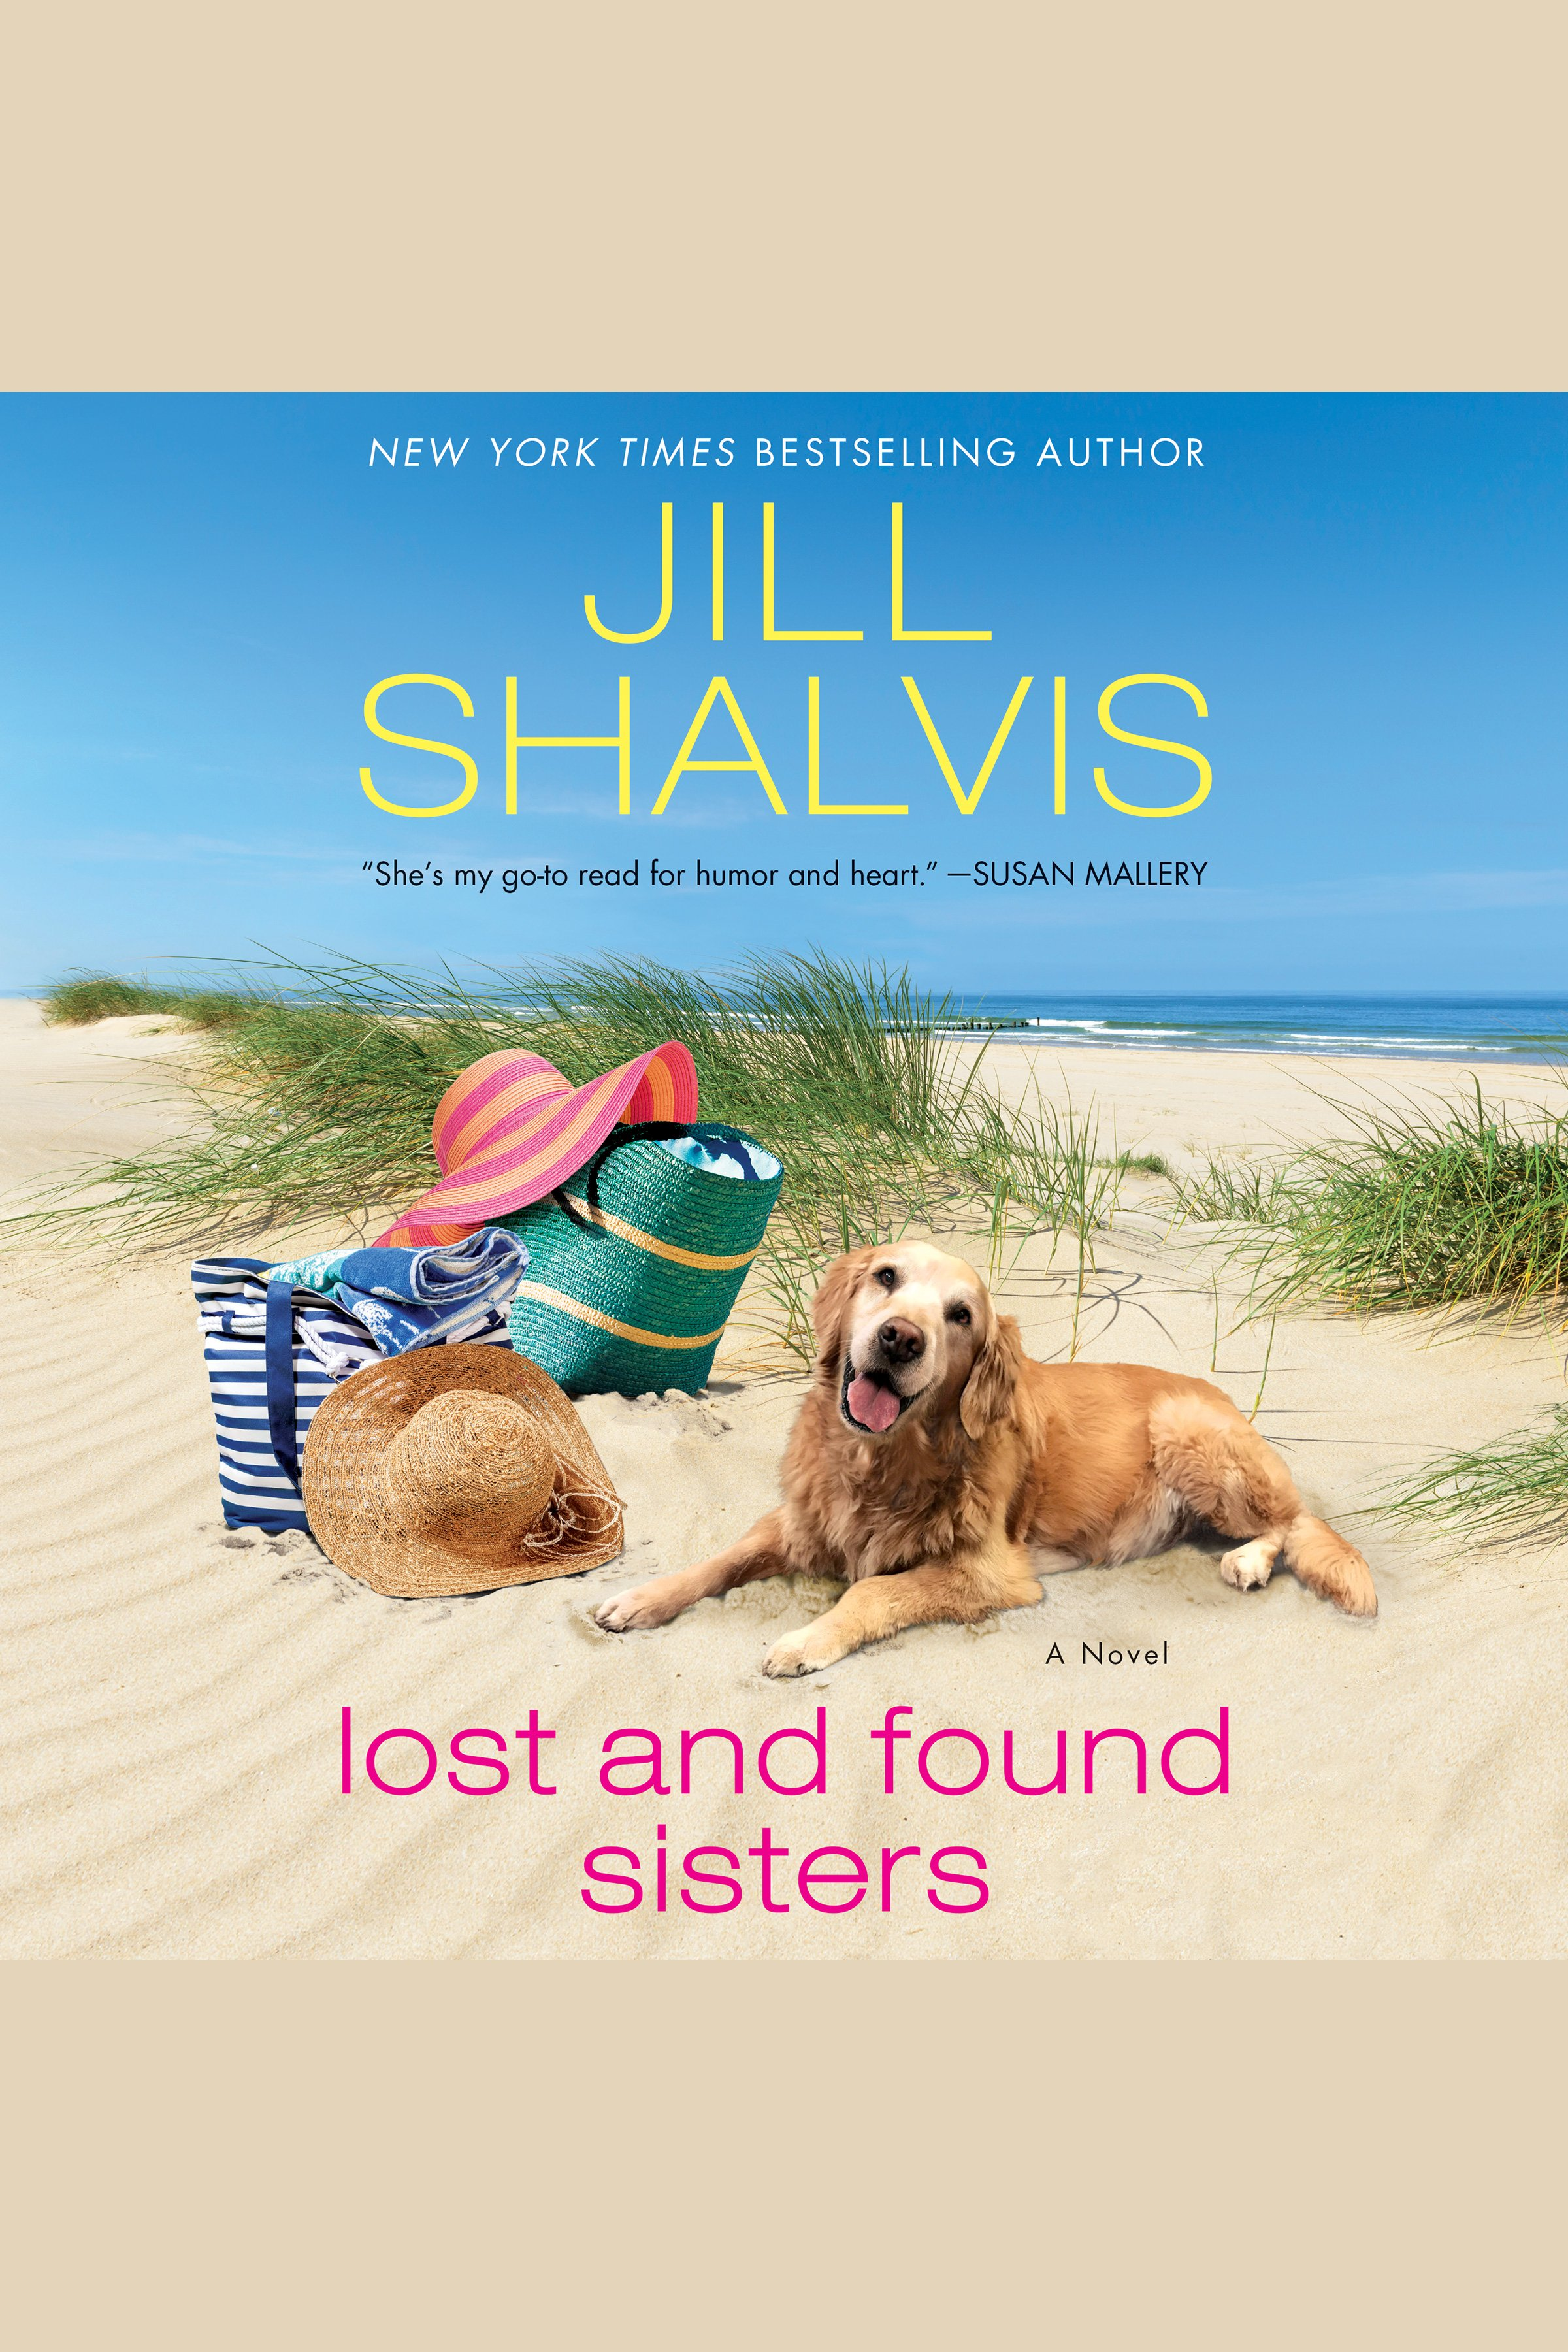 Lost and found sisters cover image